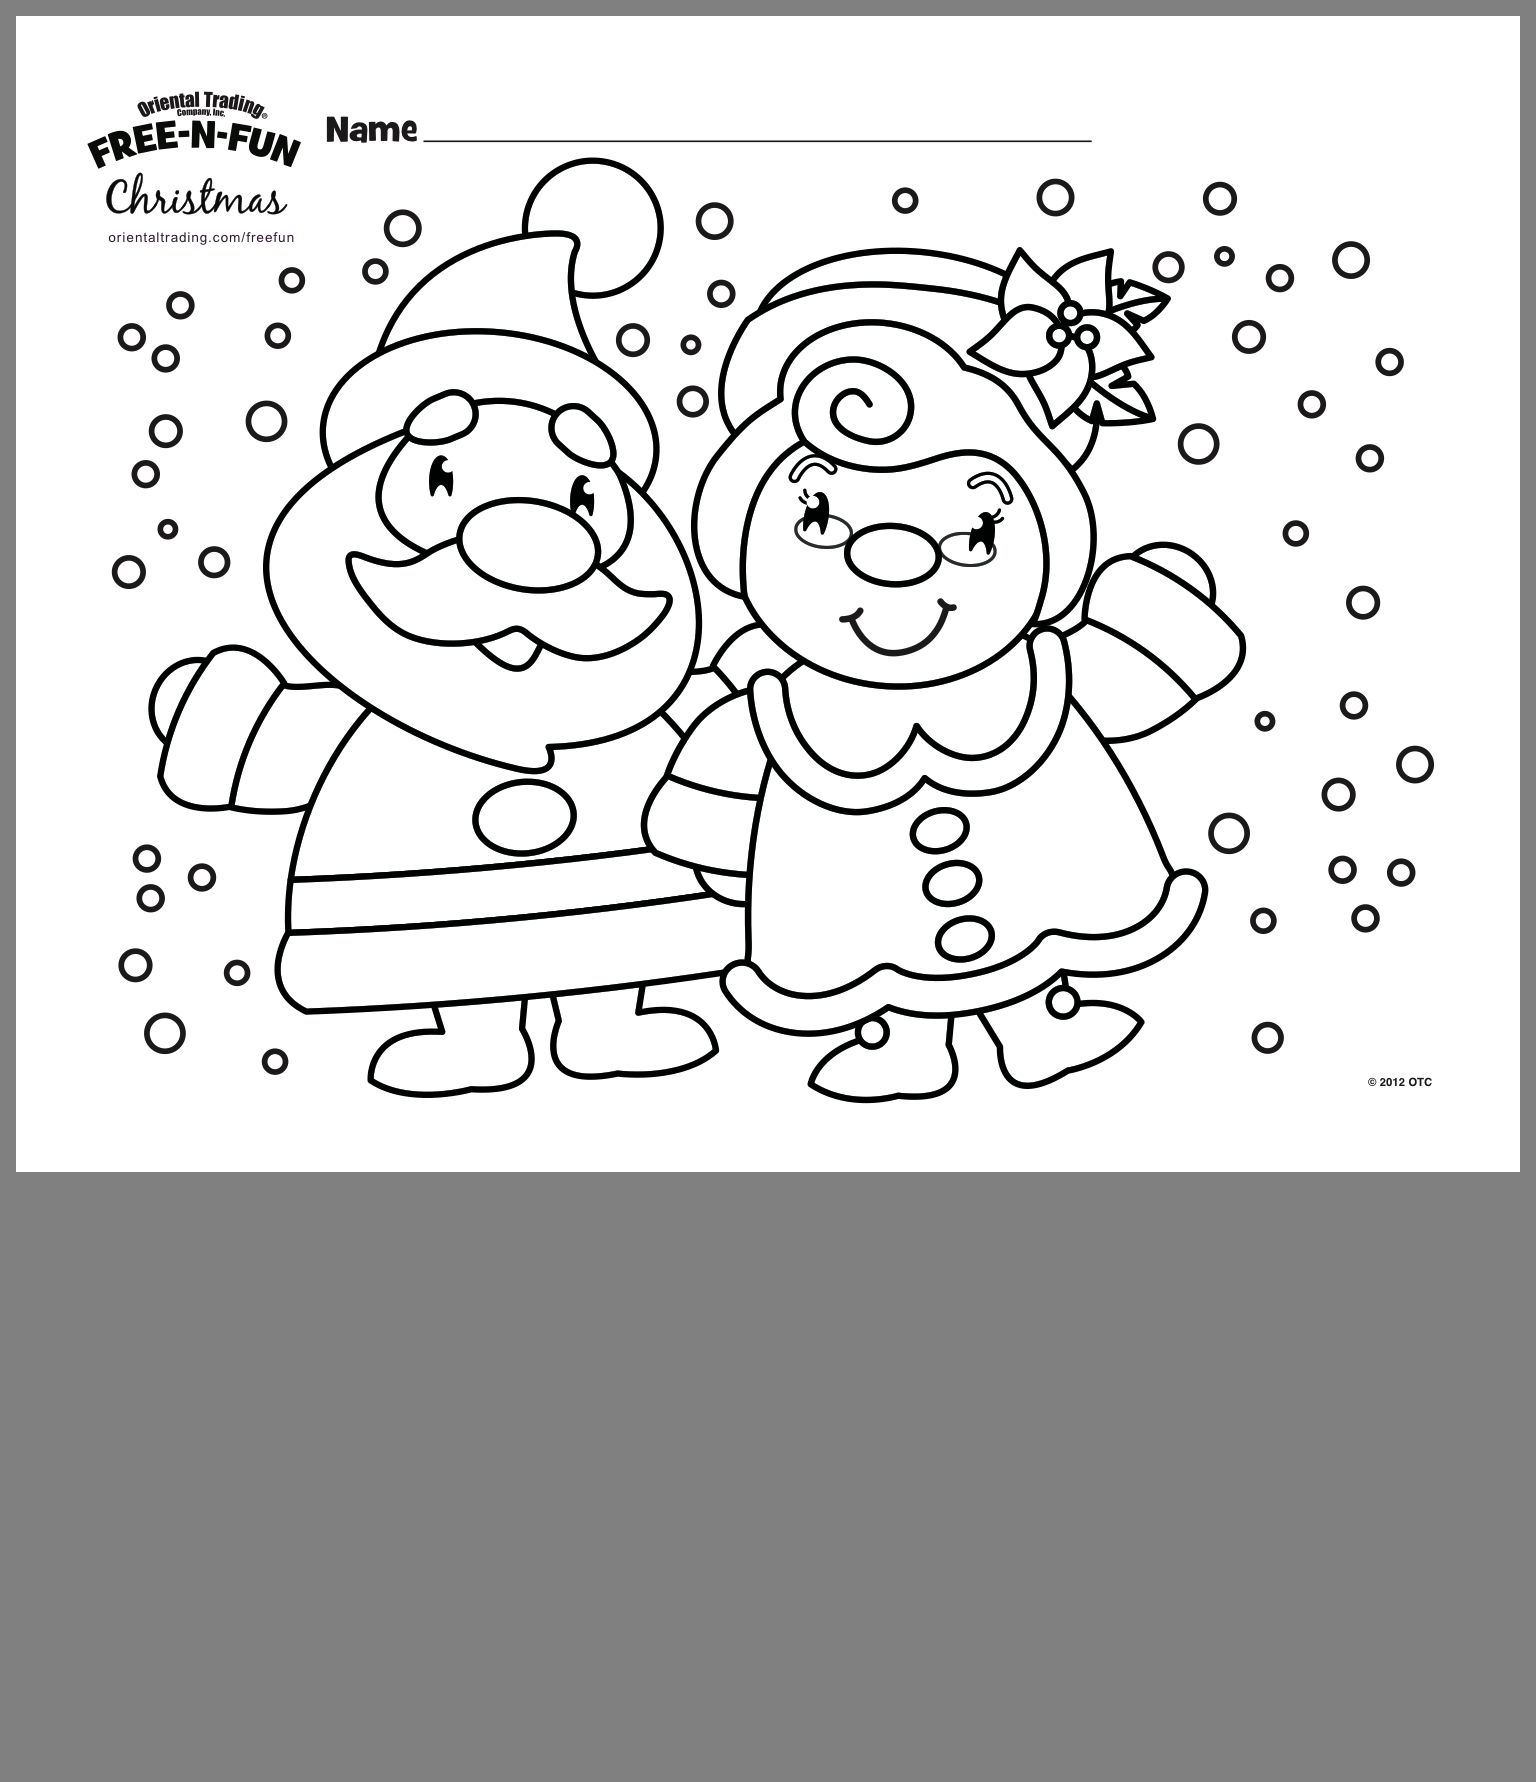 Pin By Teodora On Kids Coloring Pages Coloring For Kids Coloring Pages Coloring Pages For Kids